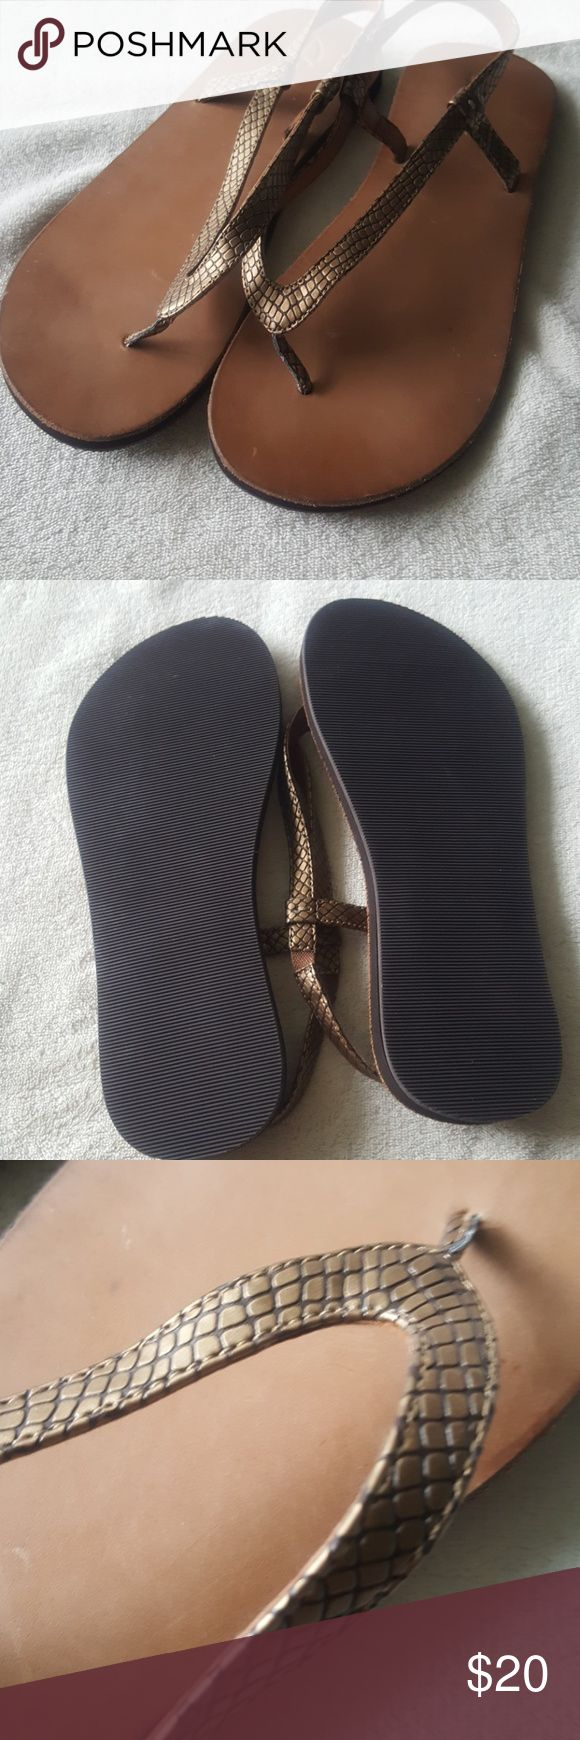 NWOT Clarks Sandals Textured print on straps, sling back style. Leather material on the top. Clarks Shoes Sandals